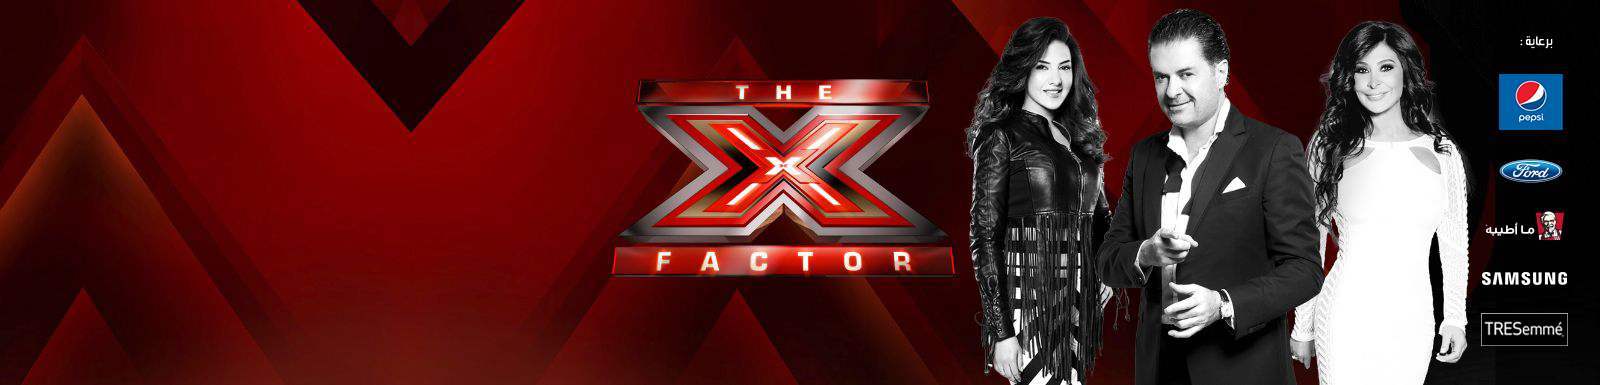 ������ ������ �� ��� ������ The X factor ���� ����� ����� 11-4-2015 ������